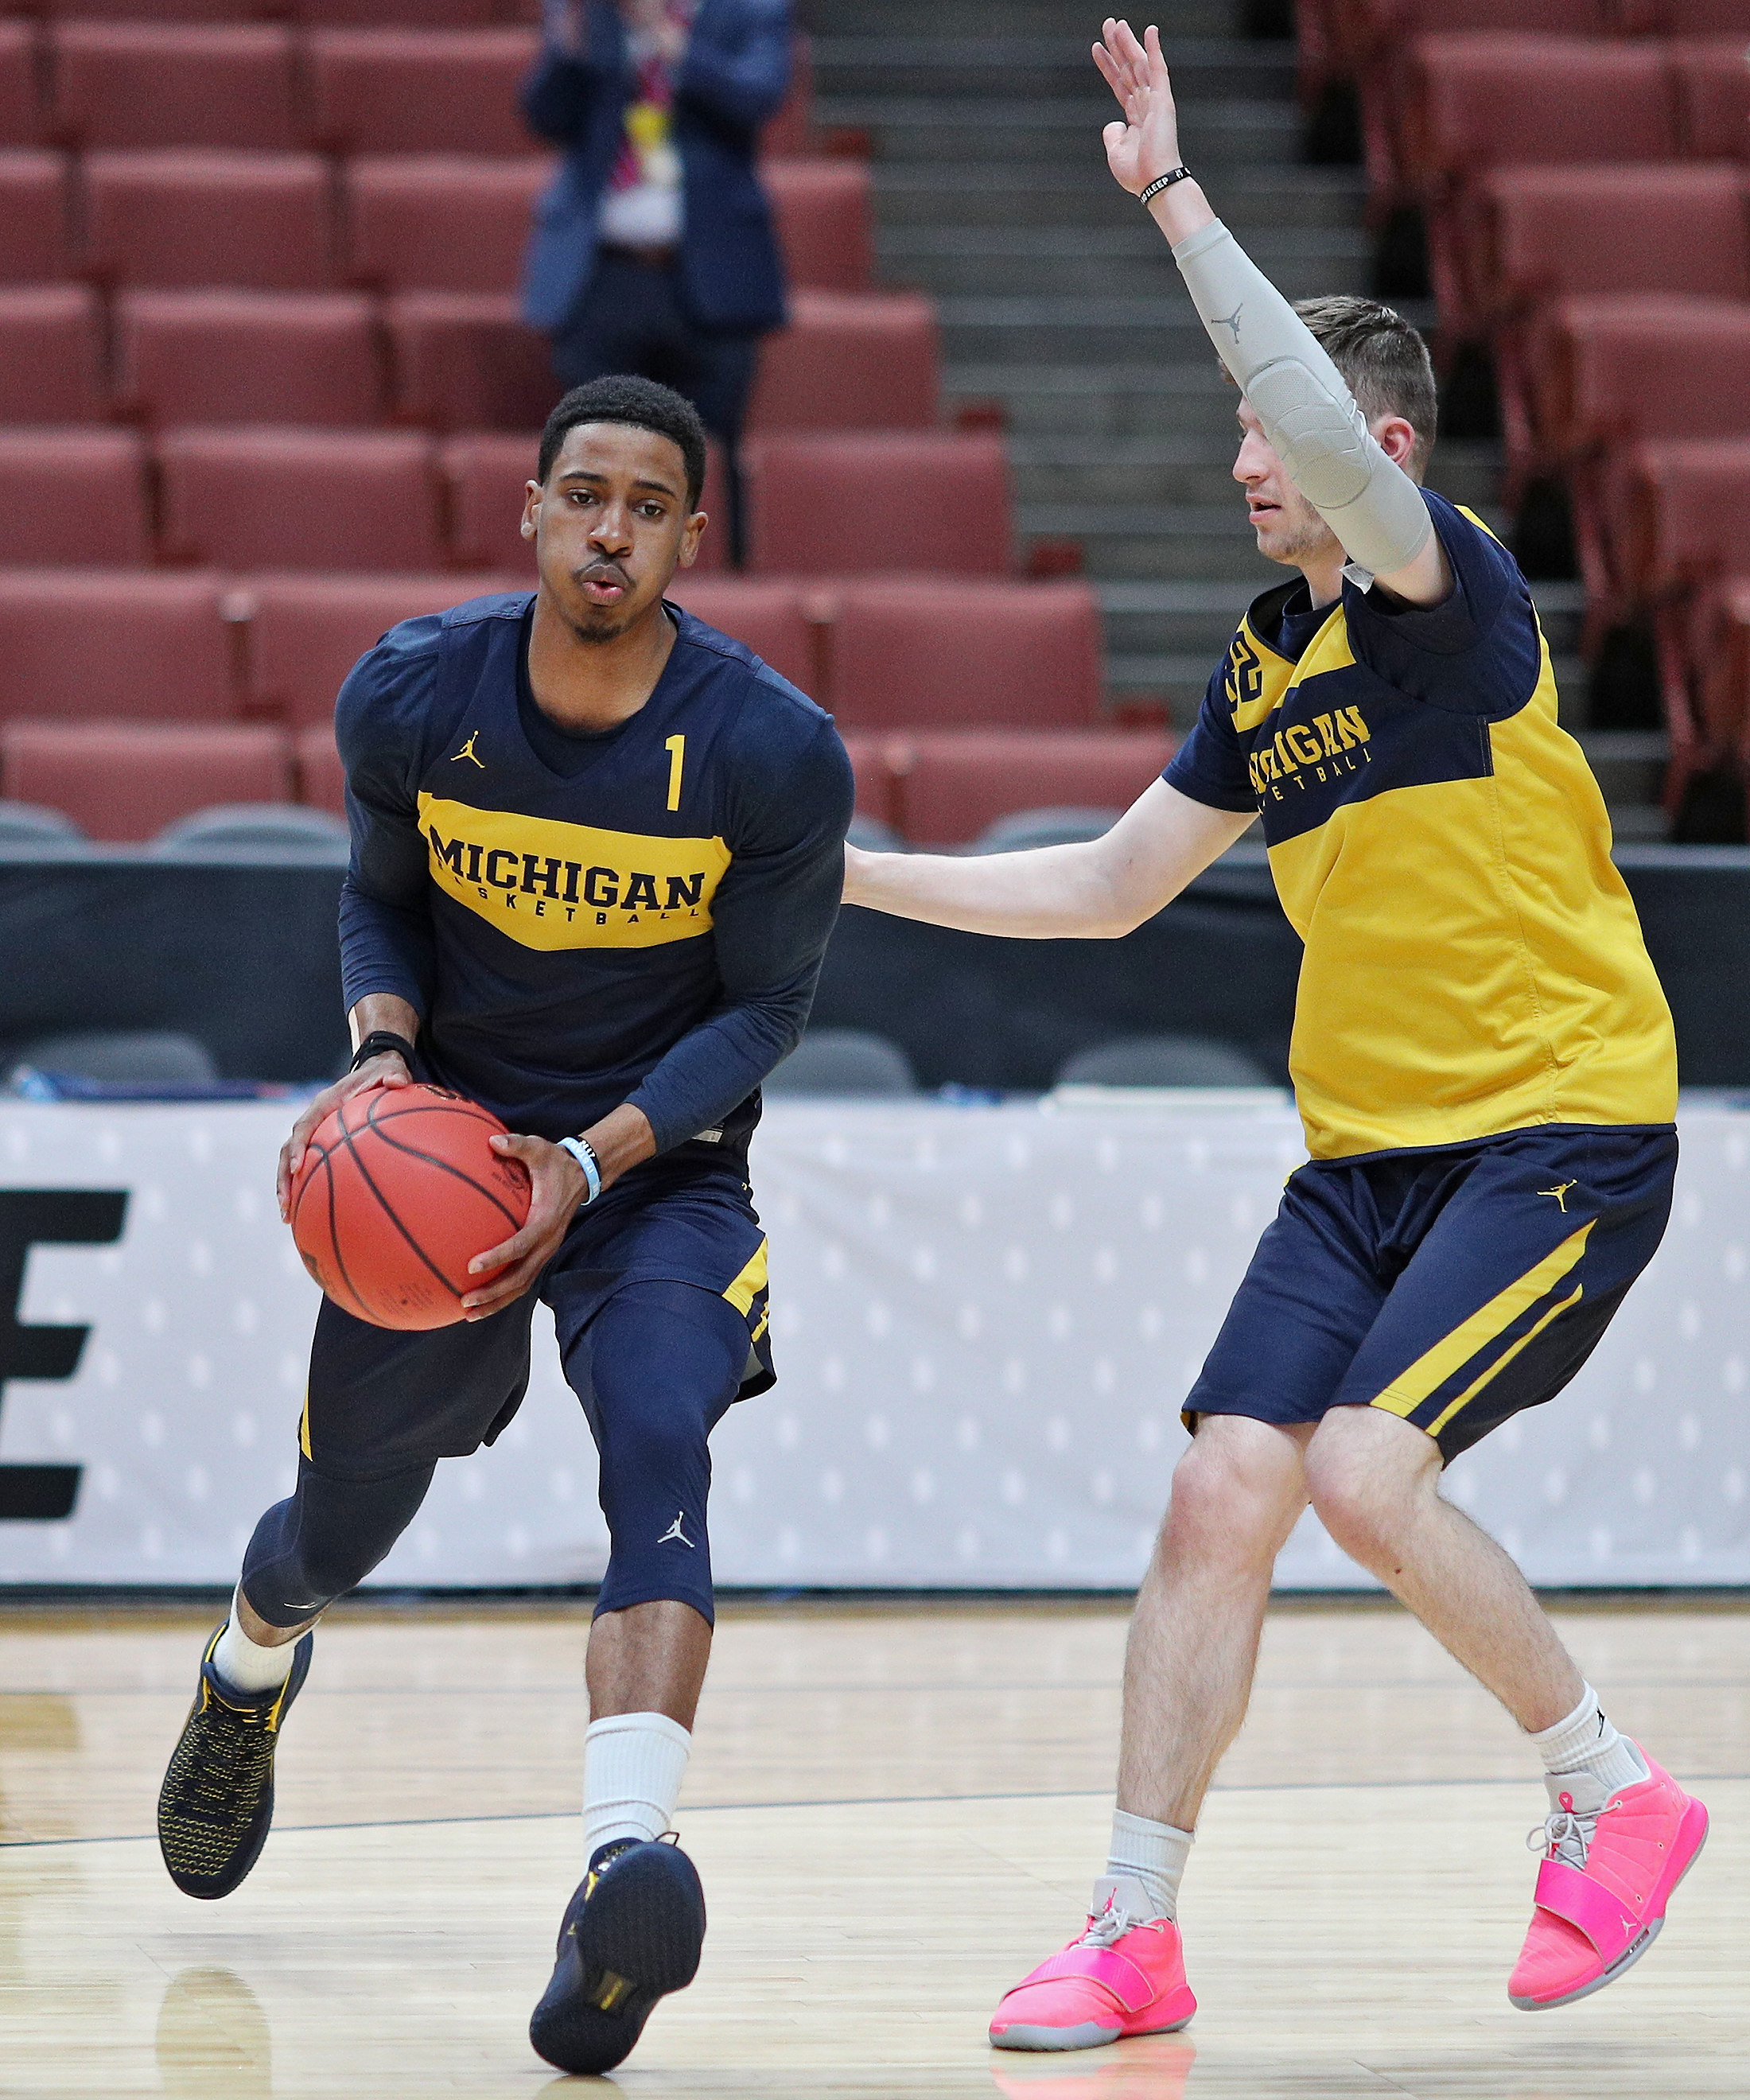 Why do some Michigan basketball players